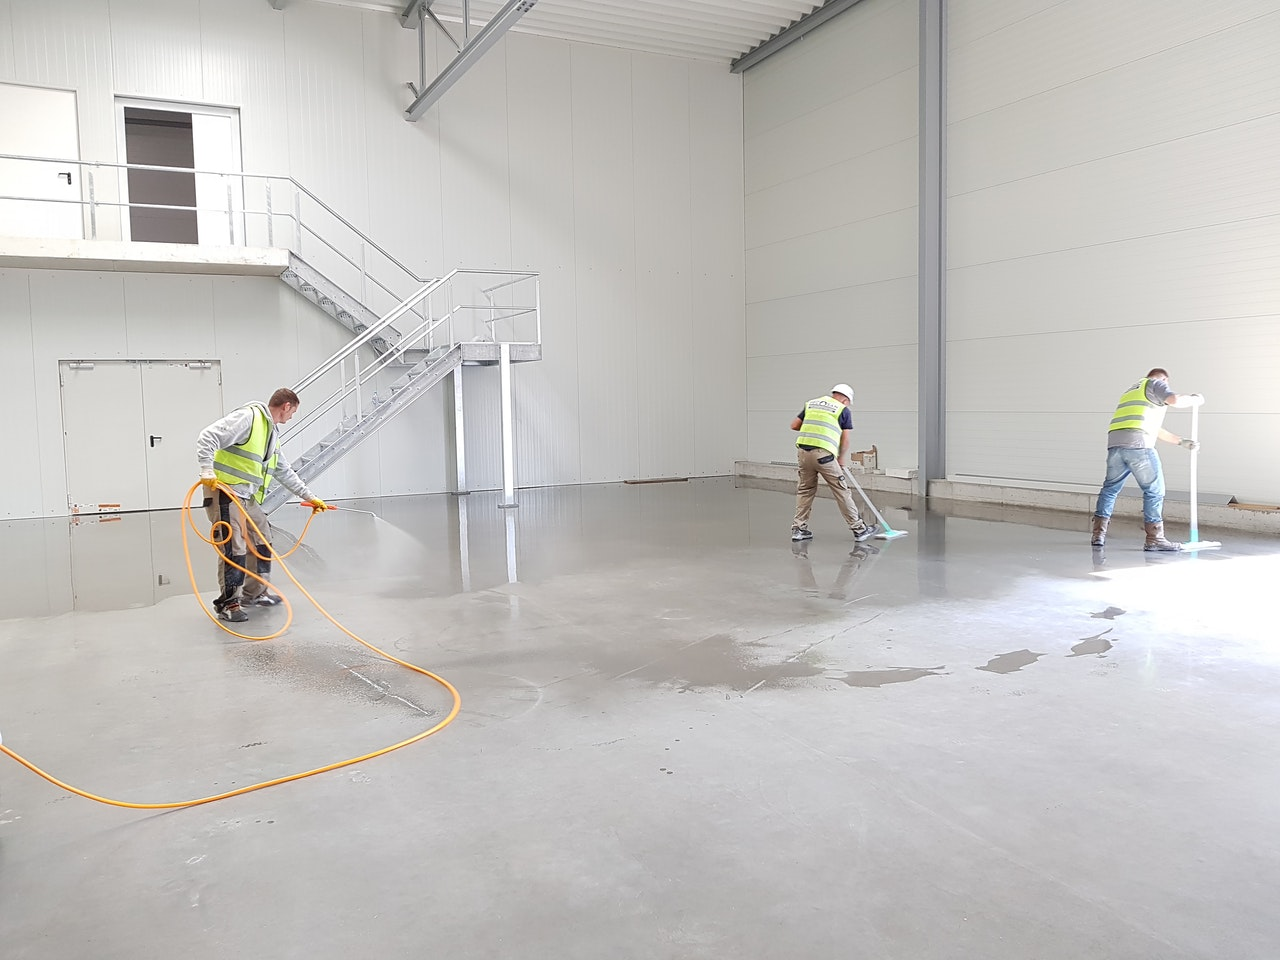 workers cleaning